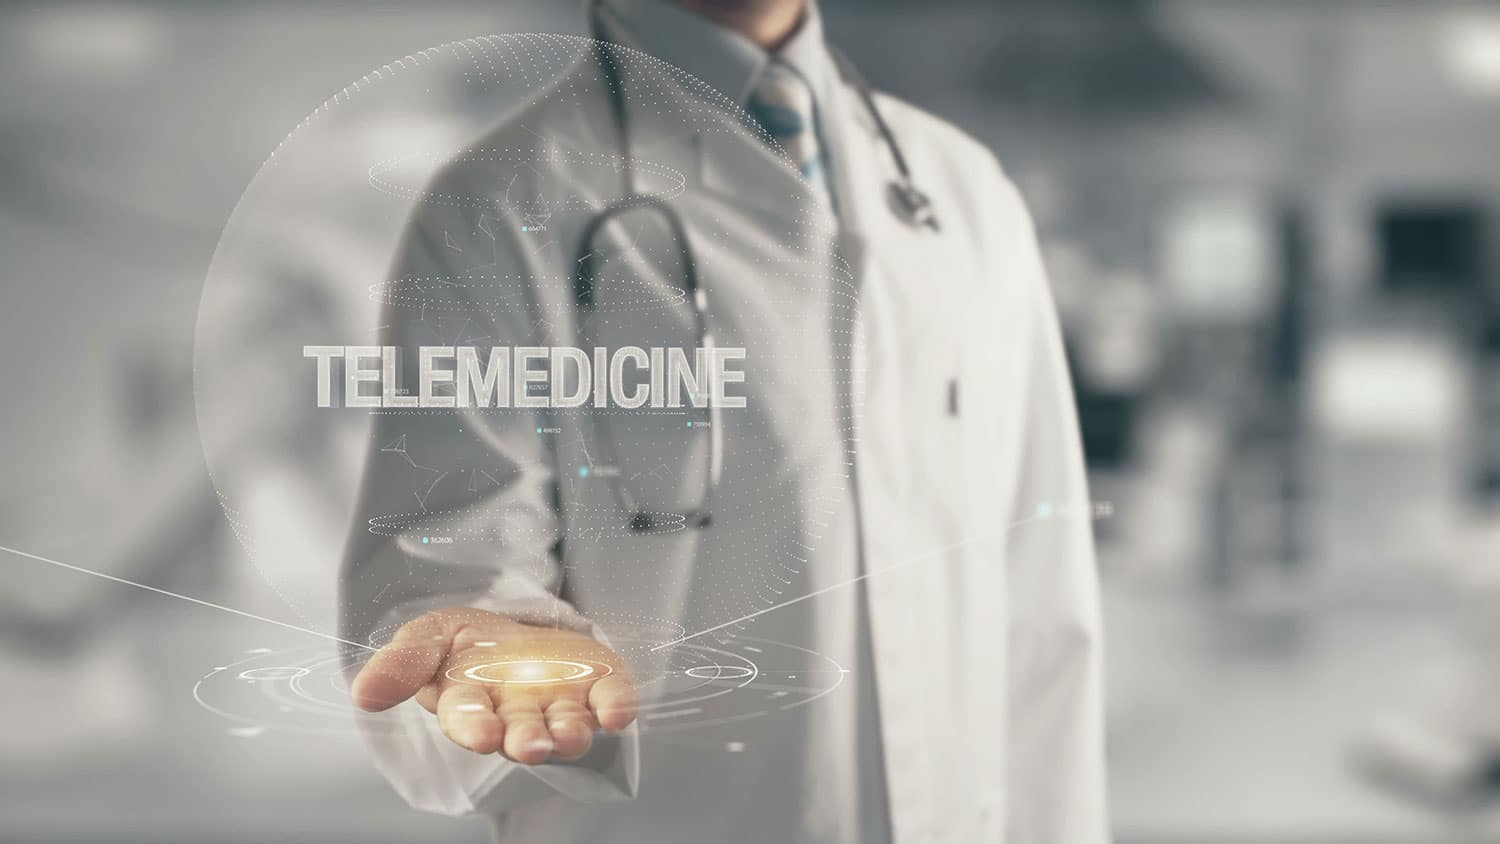 Implement telehealth to improve your practice